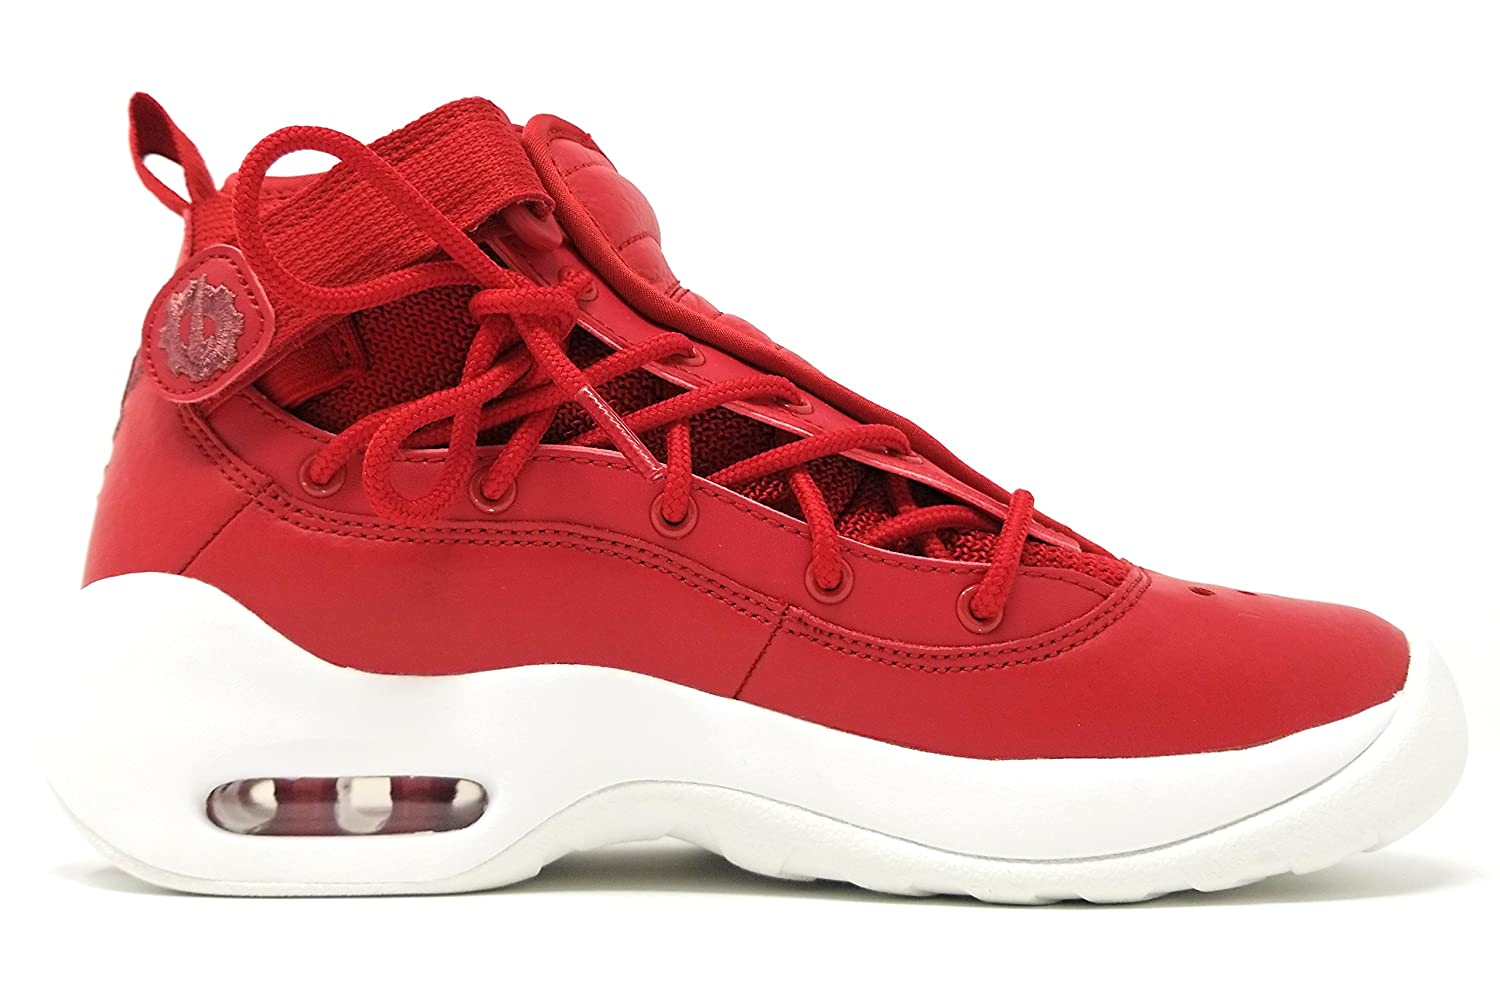 NIKE Air Shake NDESTRUKT Size 5Y GS Gym Red// Gym Red-Summit White AA2888 600